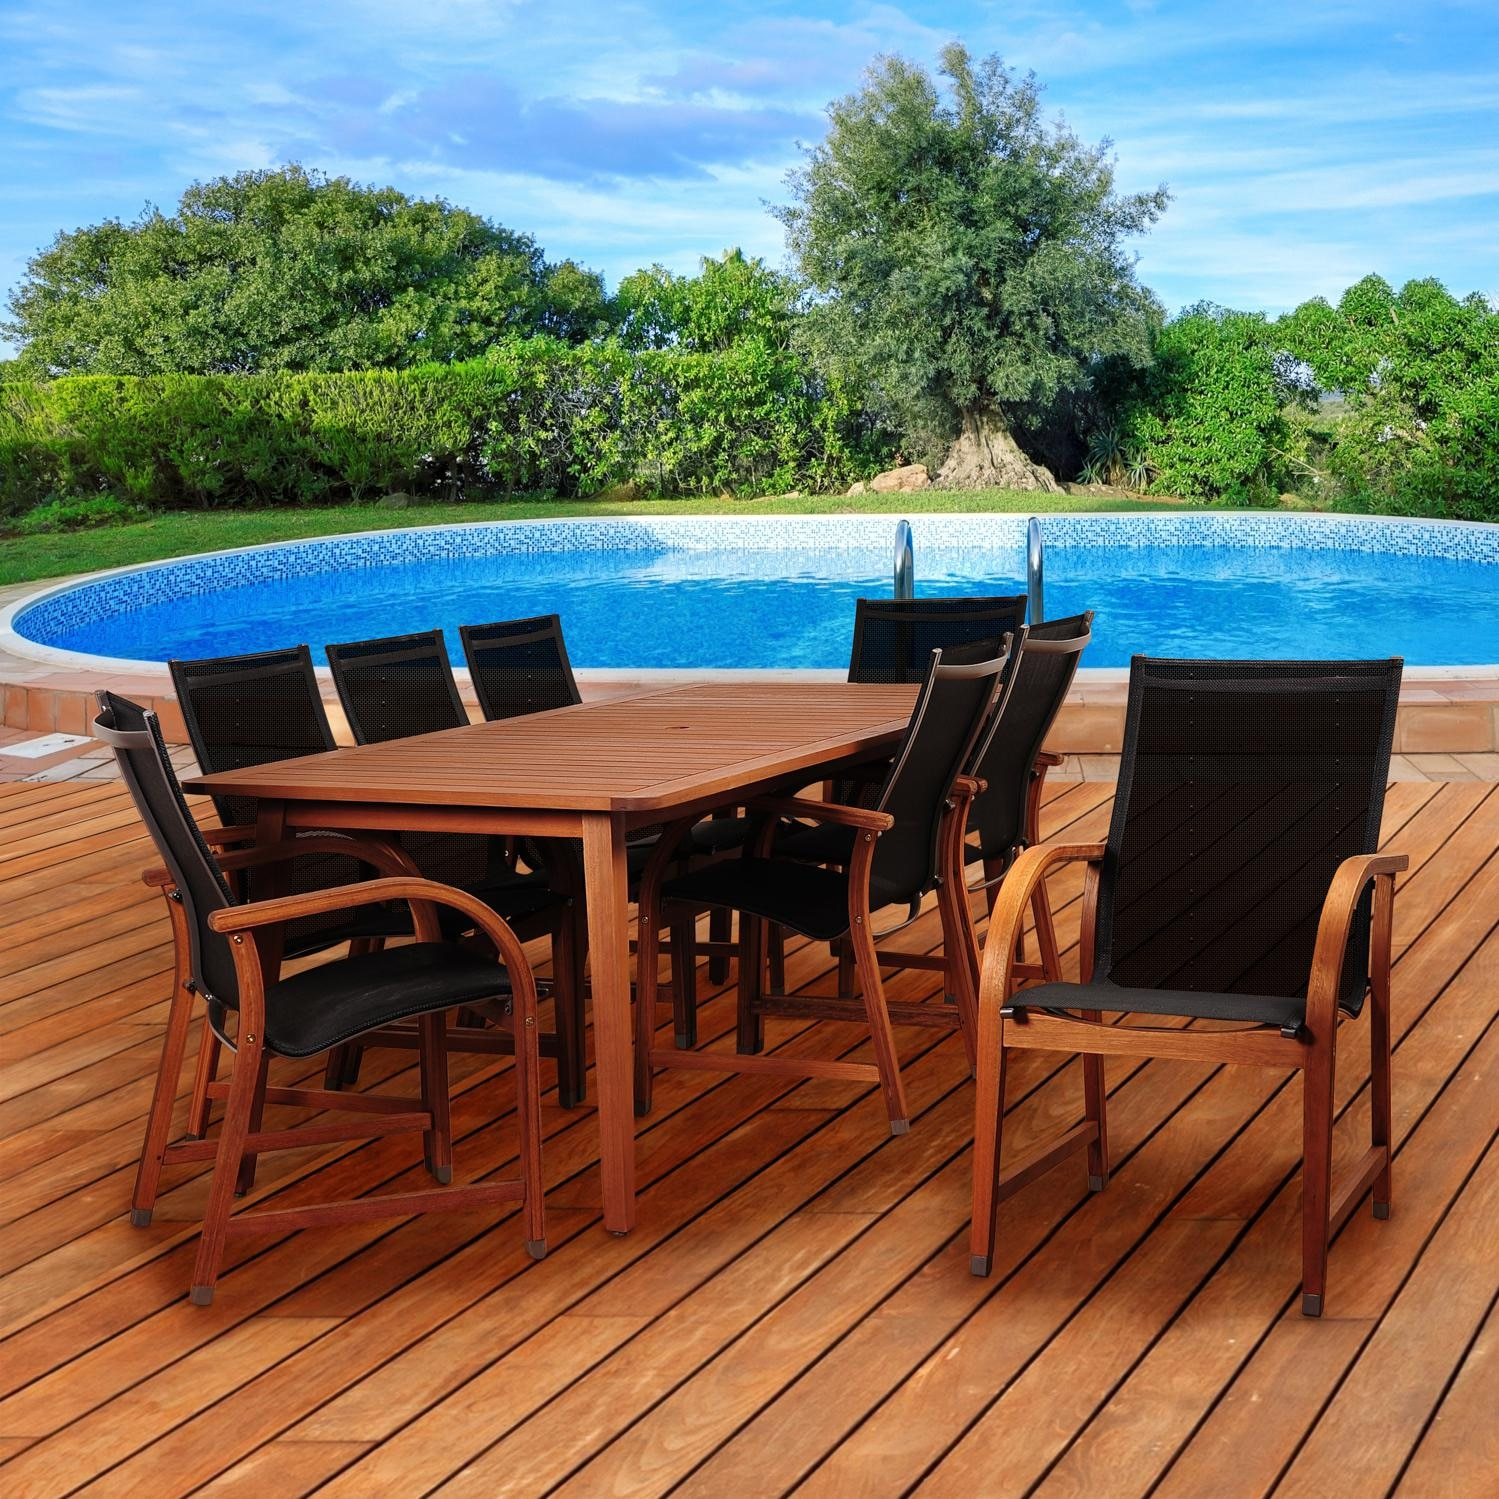 Amazonia SC ARIZ_8MANHA Bahamas 8 Person Eucalyptus Patio Rectangular  Dining Set W/ Black Sling Dining Arm Chair On Outside Deck